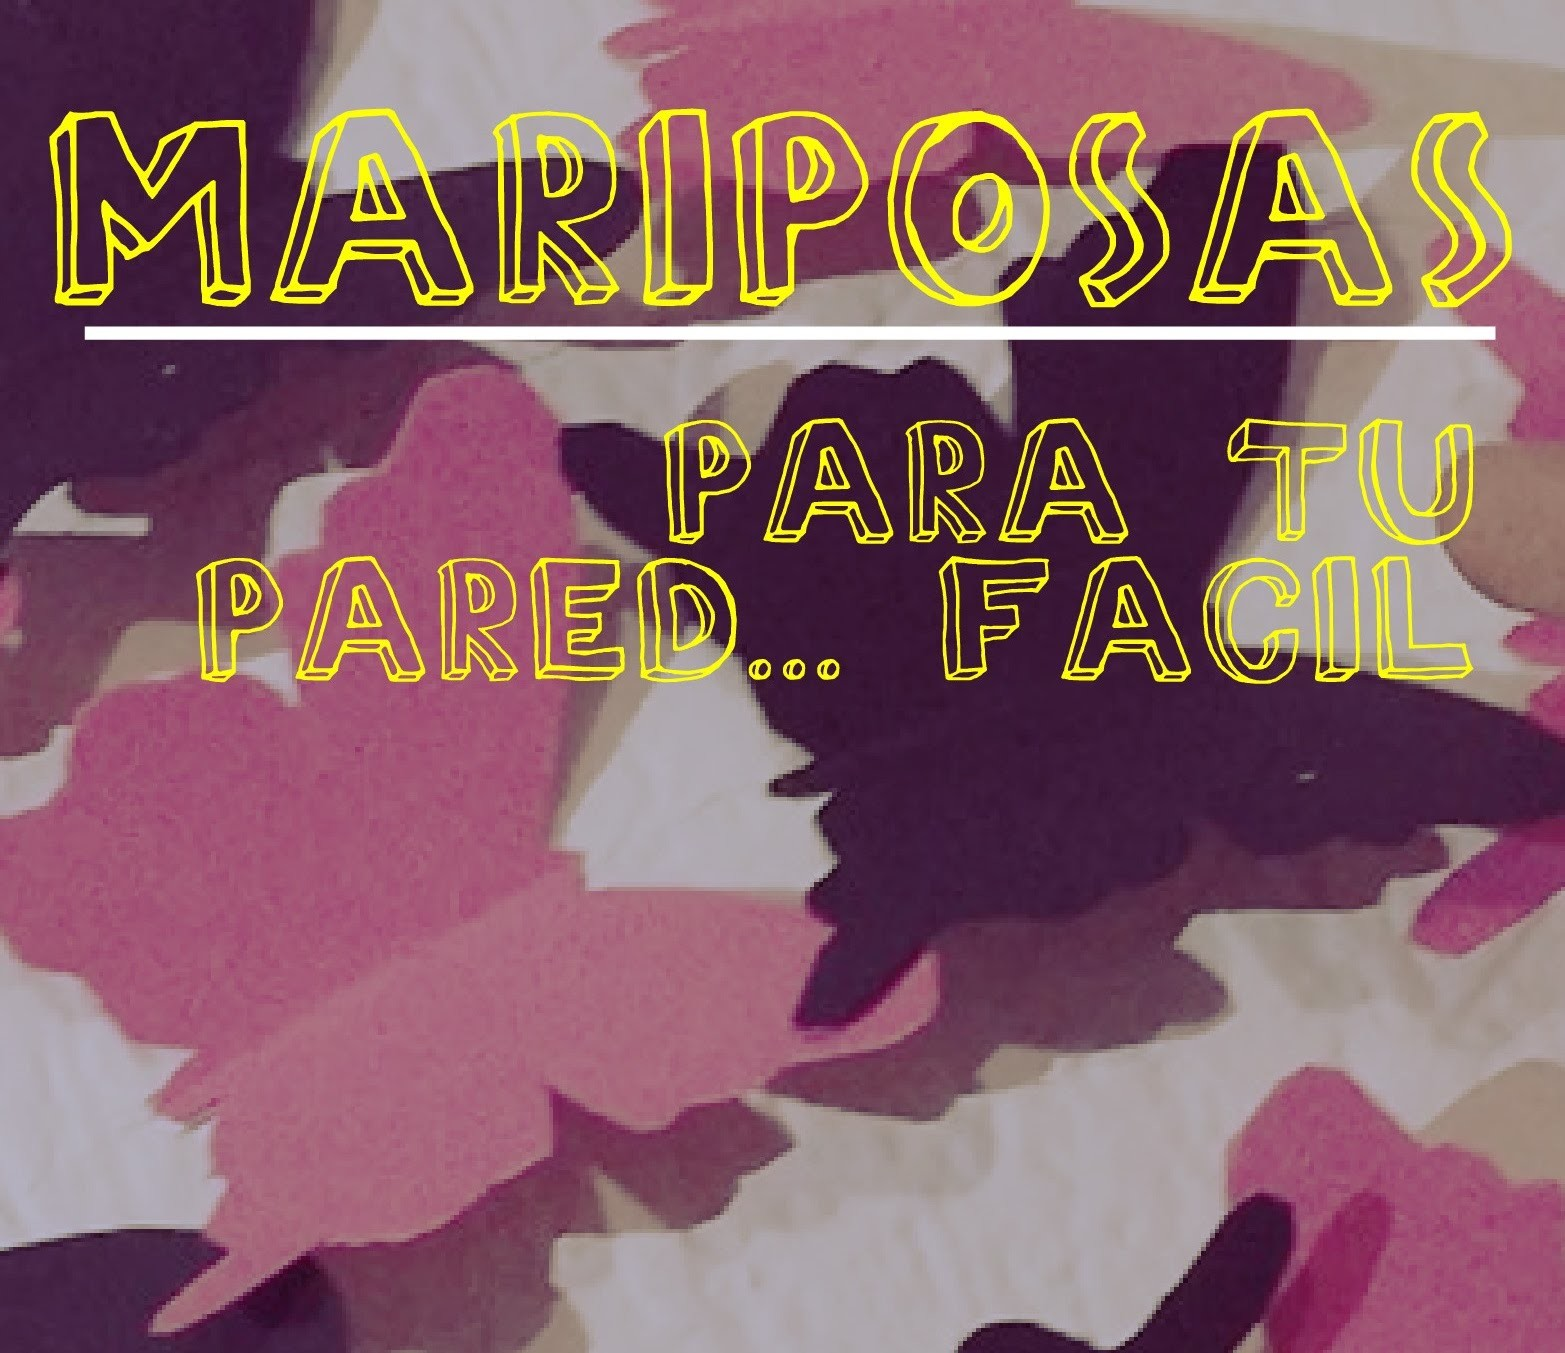 !!! DIY MARIPOSAS PARA PARED SUPER FACIL Y RAPIDO, DECORACION!!!.